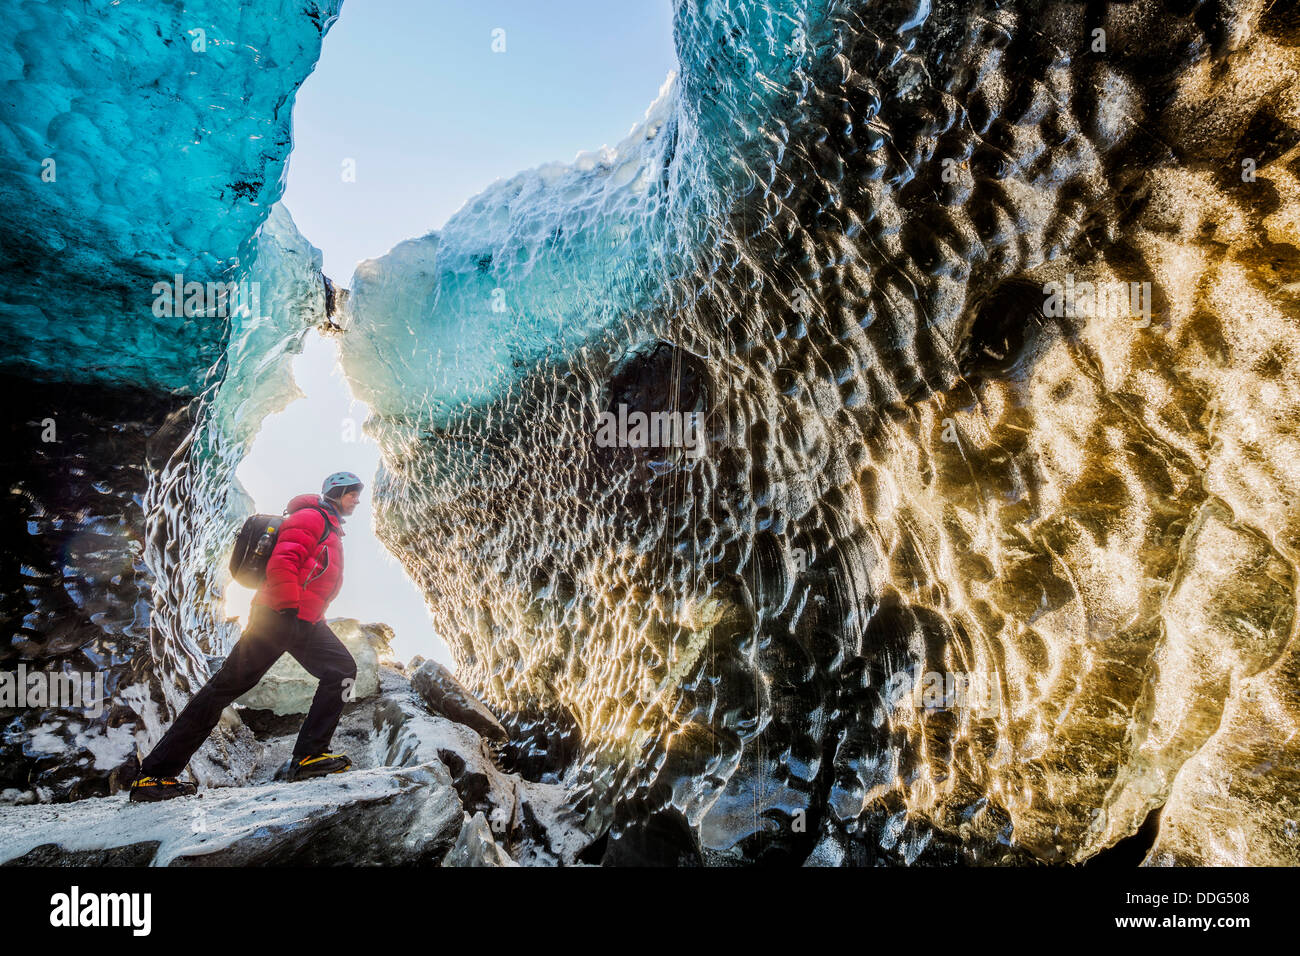 Exploring a glacial ice cave, Svinafellsjokull, Iceland - Stock Image